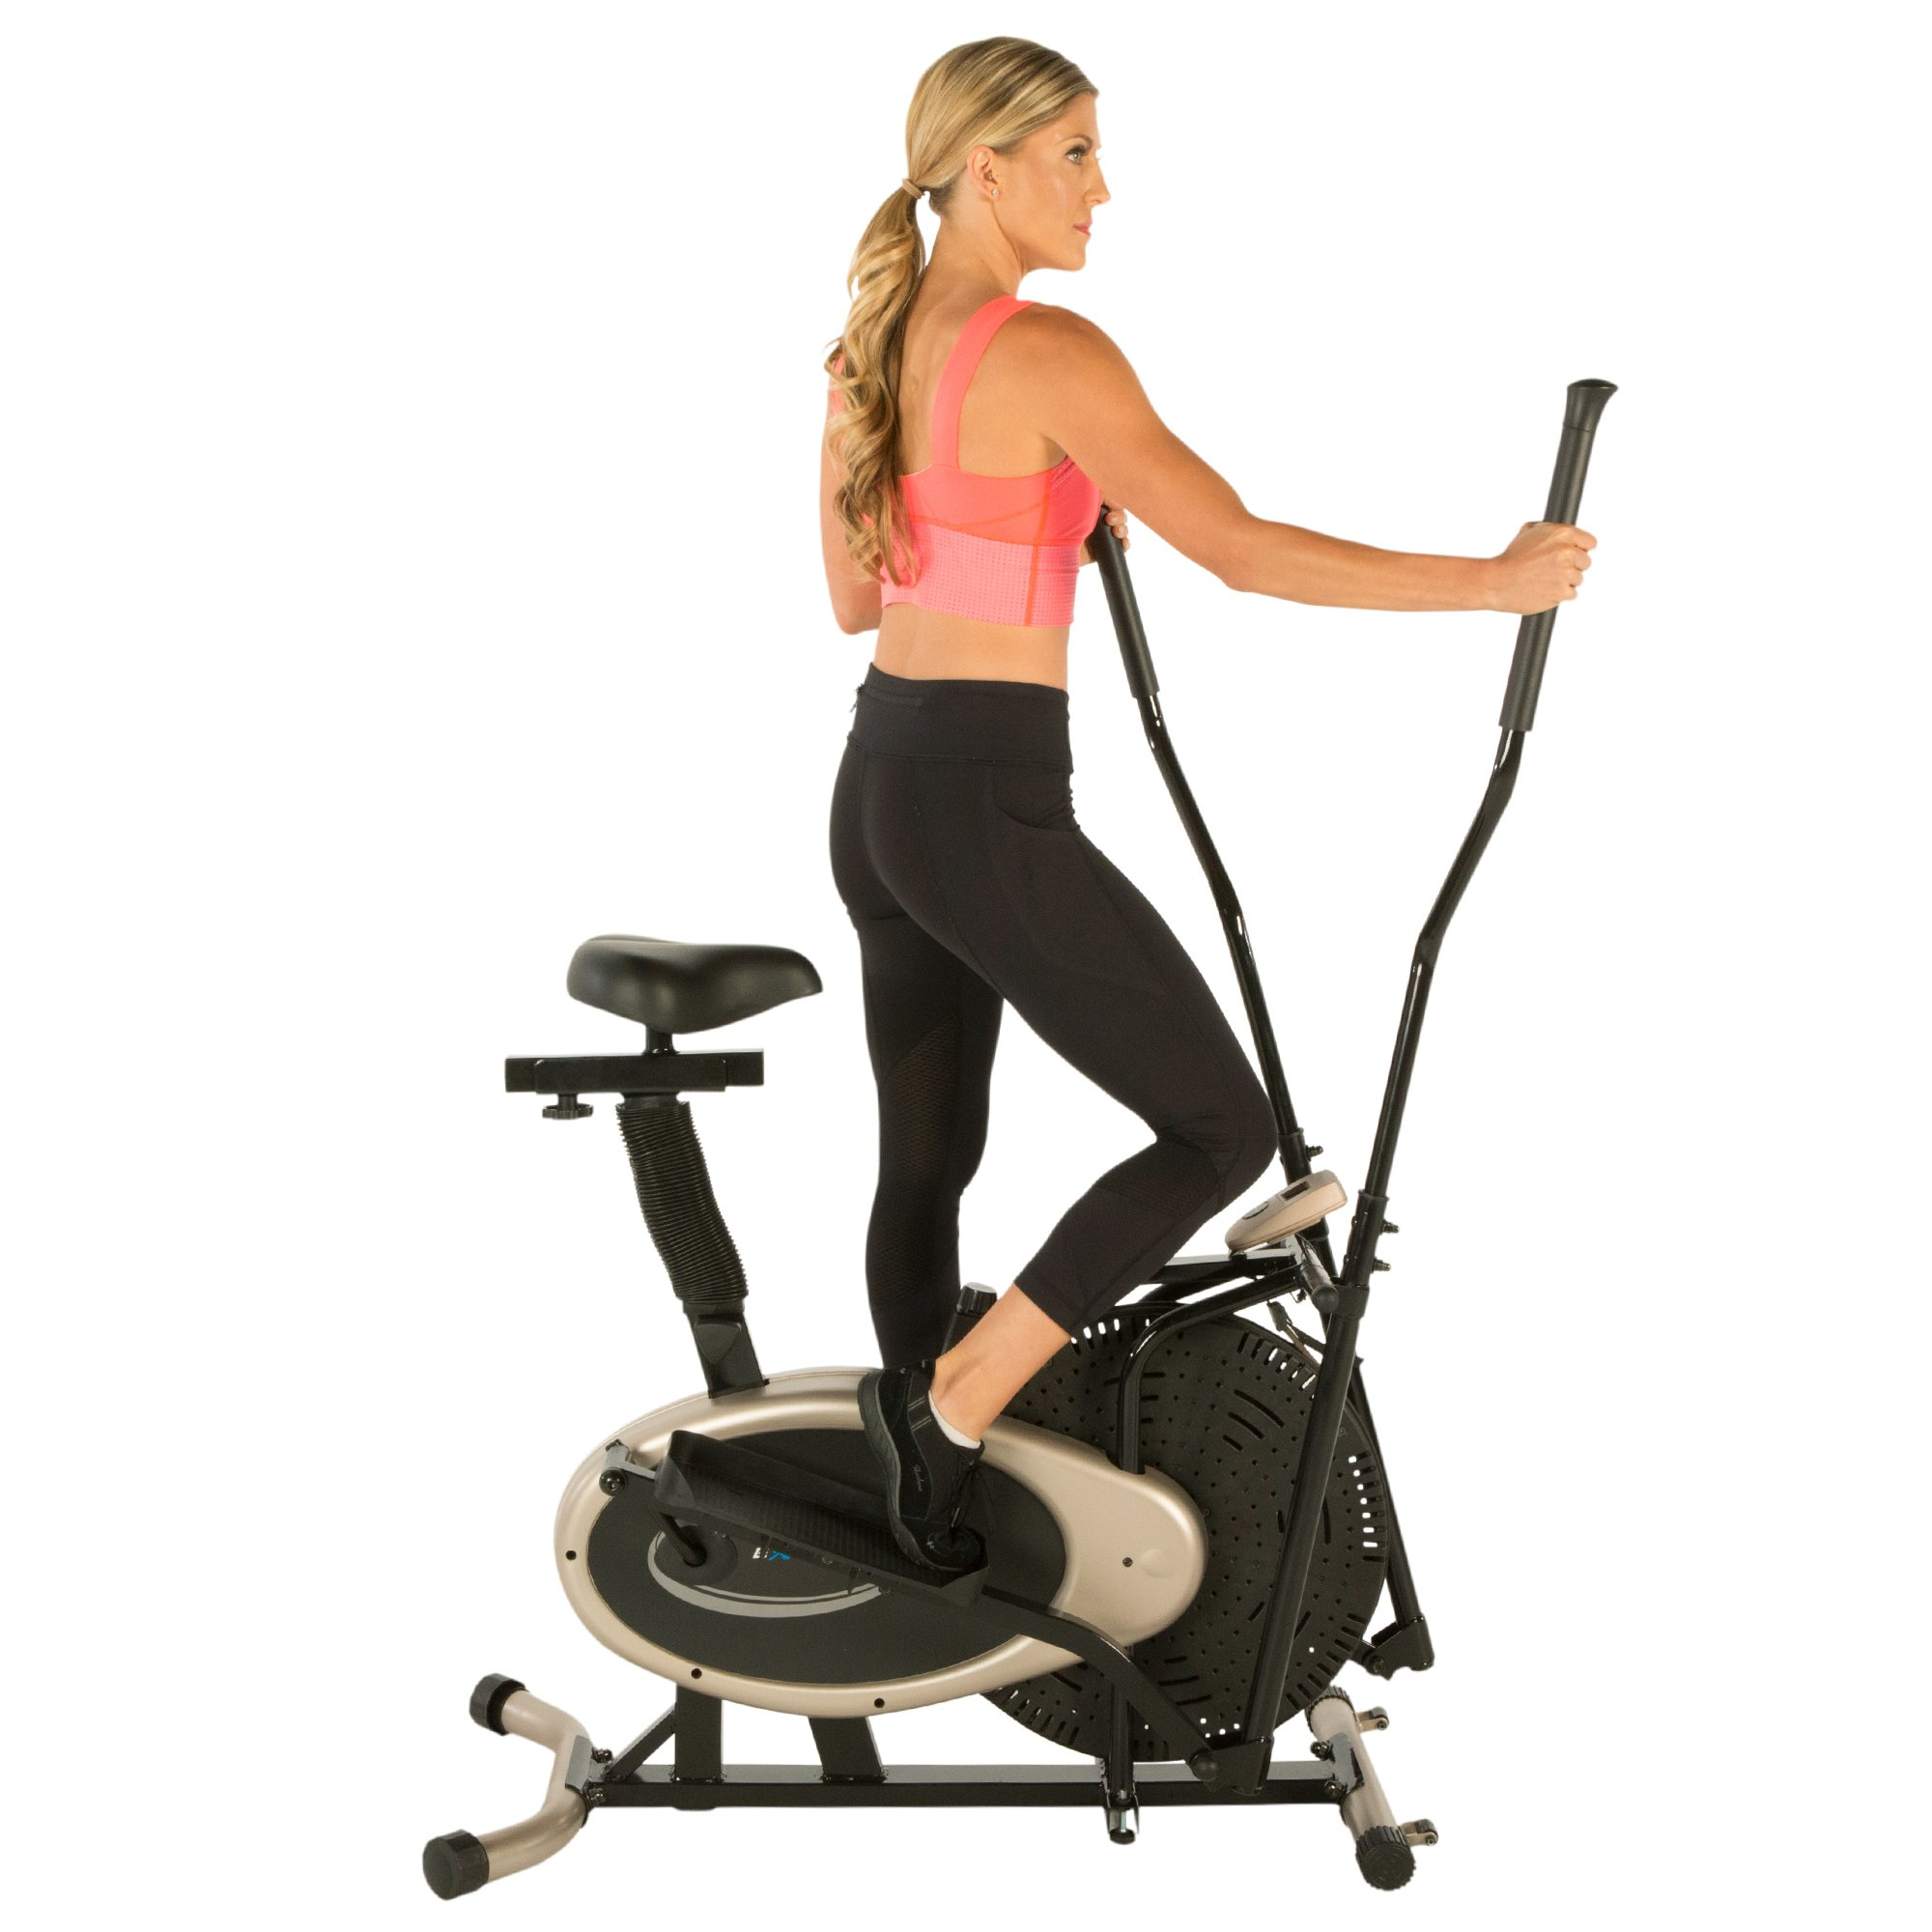 Exerpeutic Gold Elliptical and Exercise Bike Dual Trainer by Exerpeutic